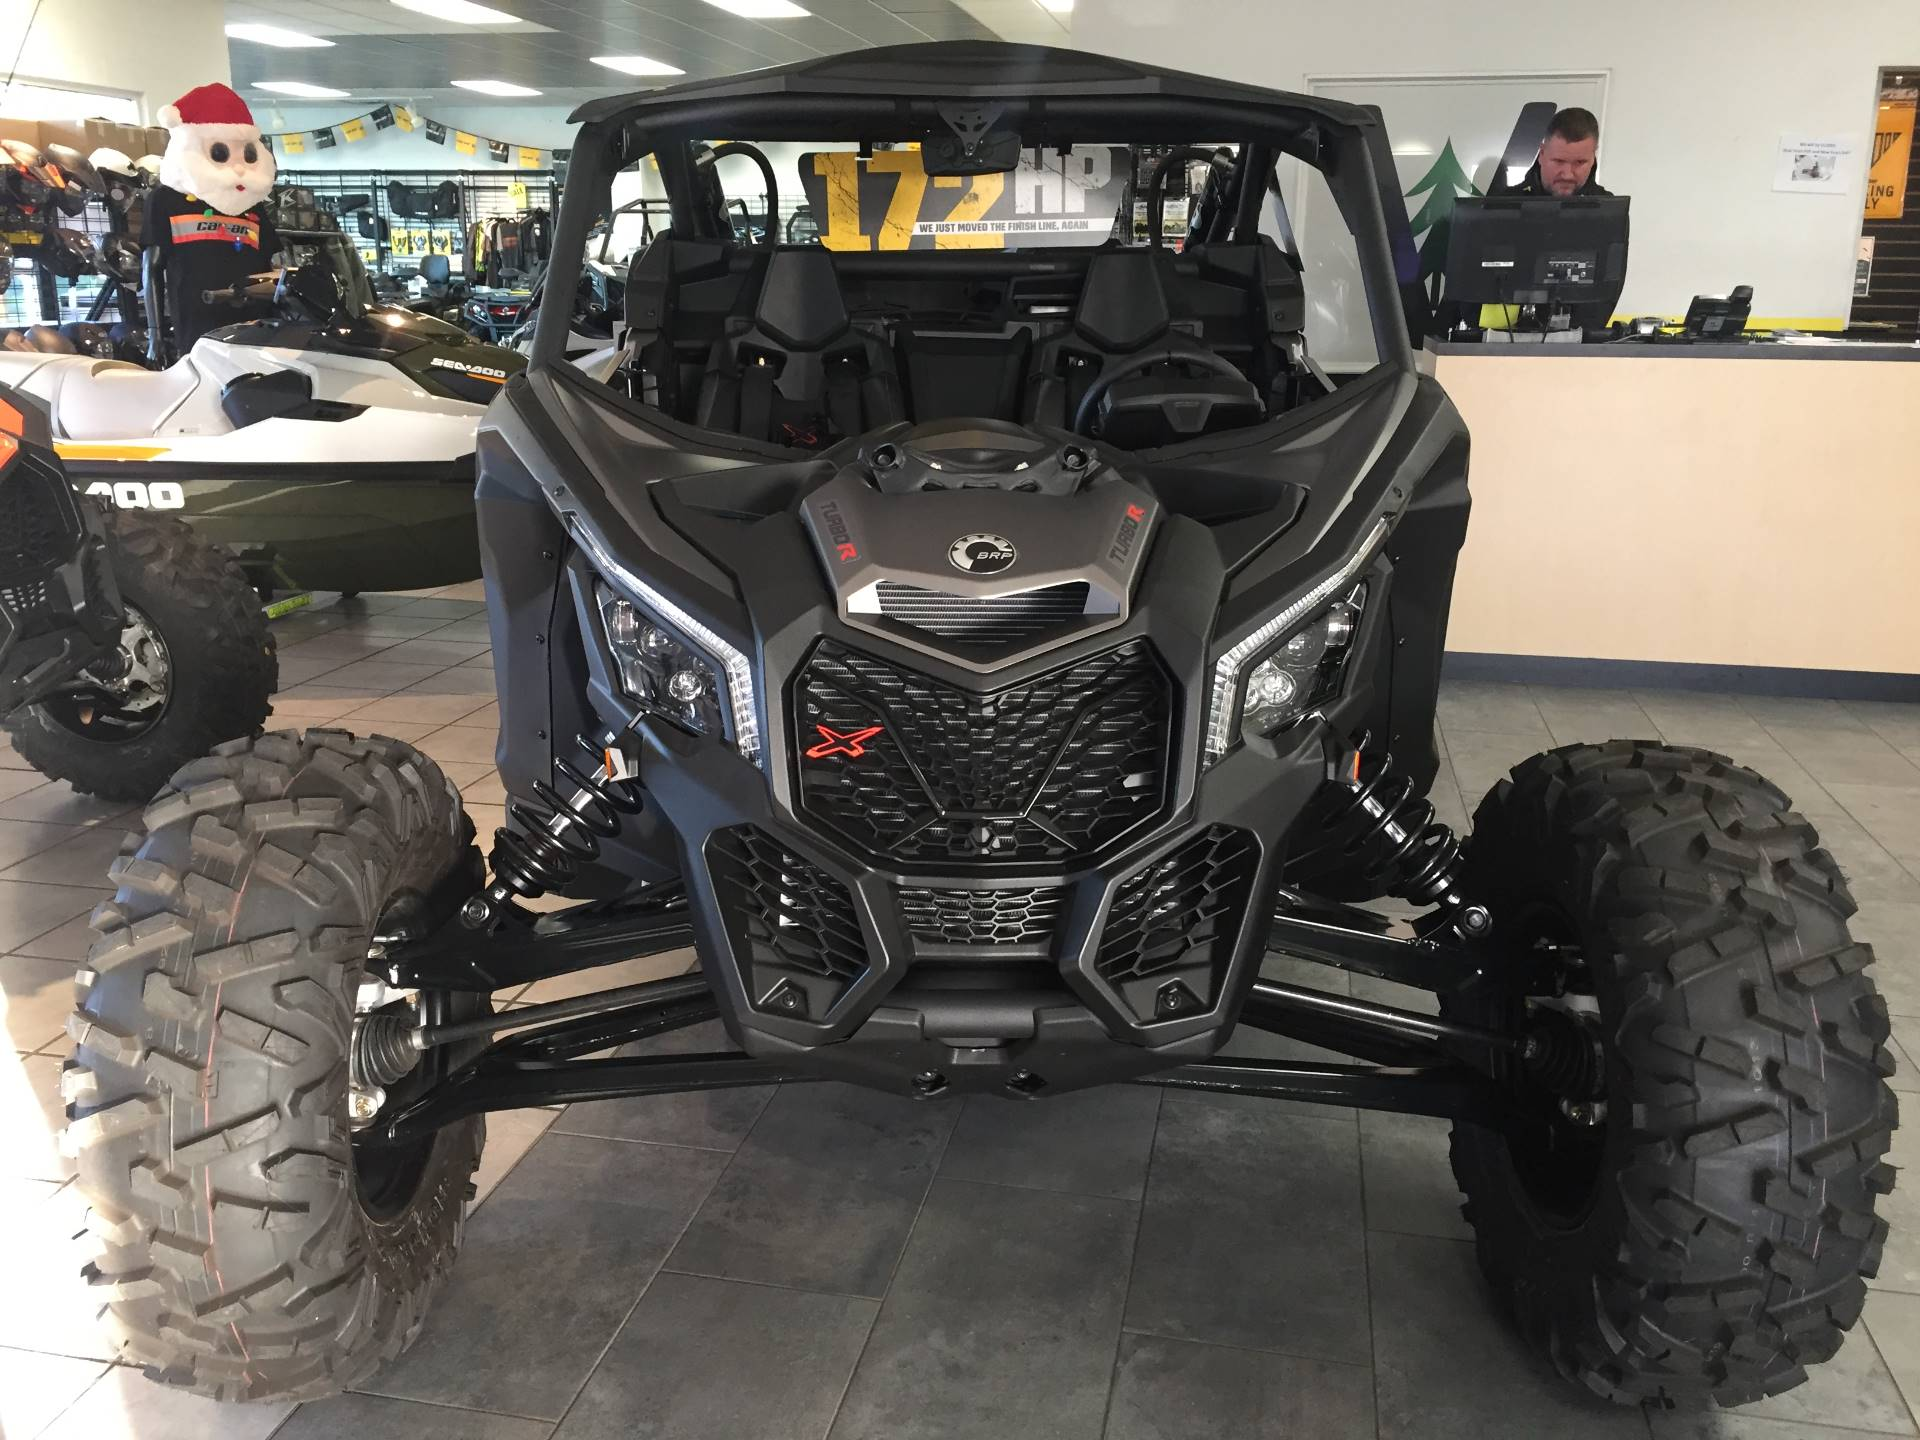 2019 Can-Am Maverick X3 X rs Turbo R in Eugene, Oregon